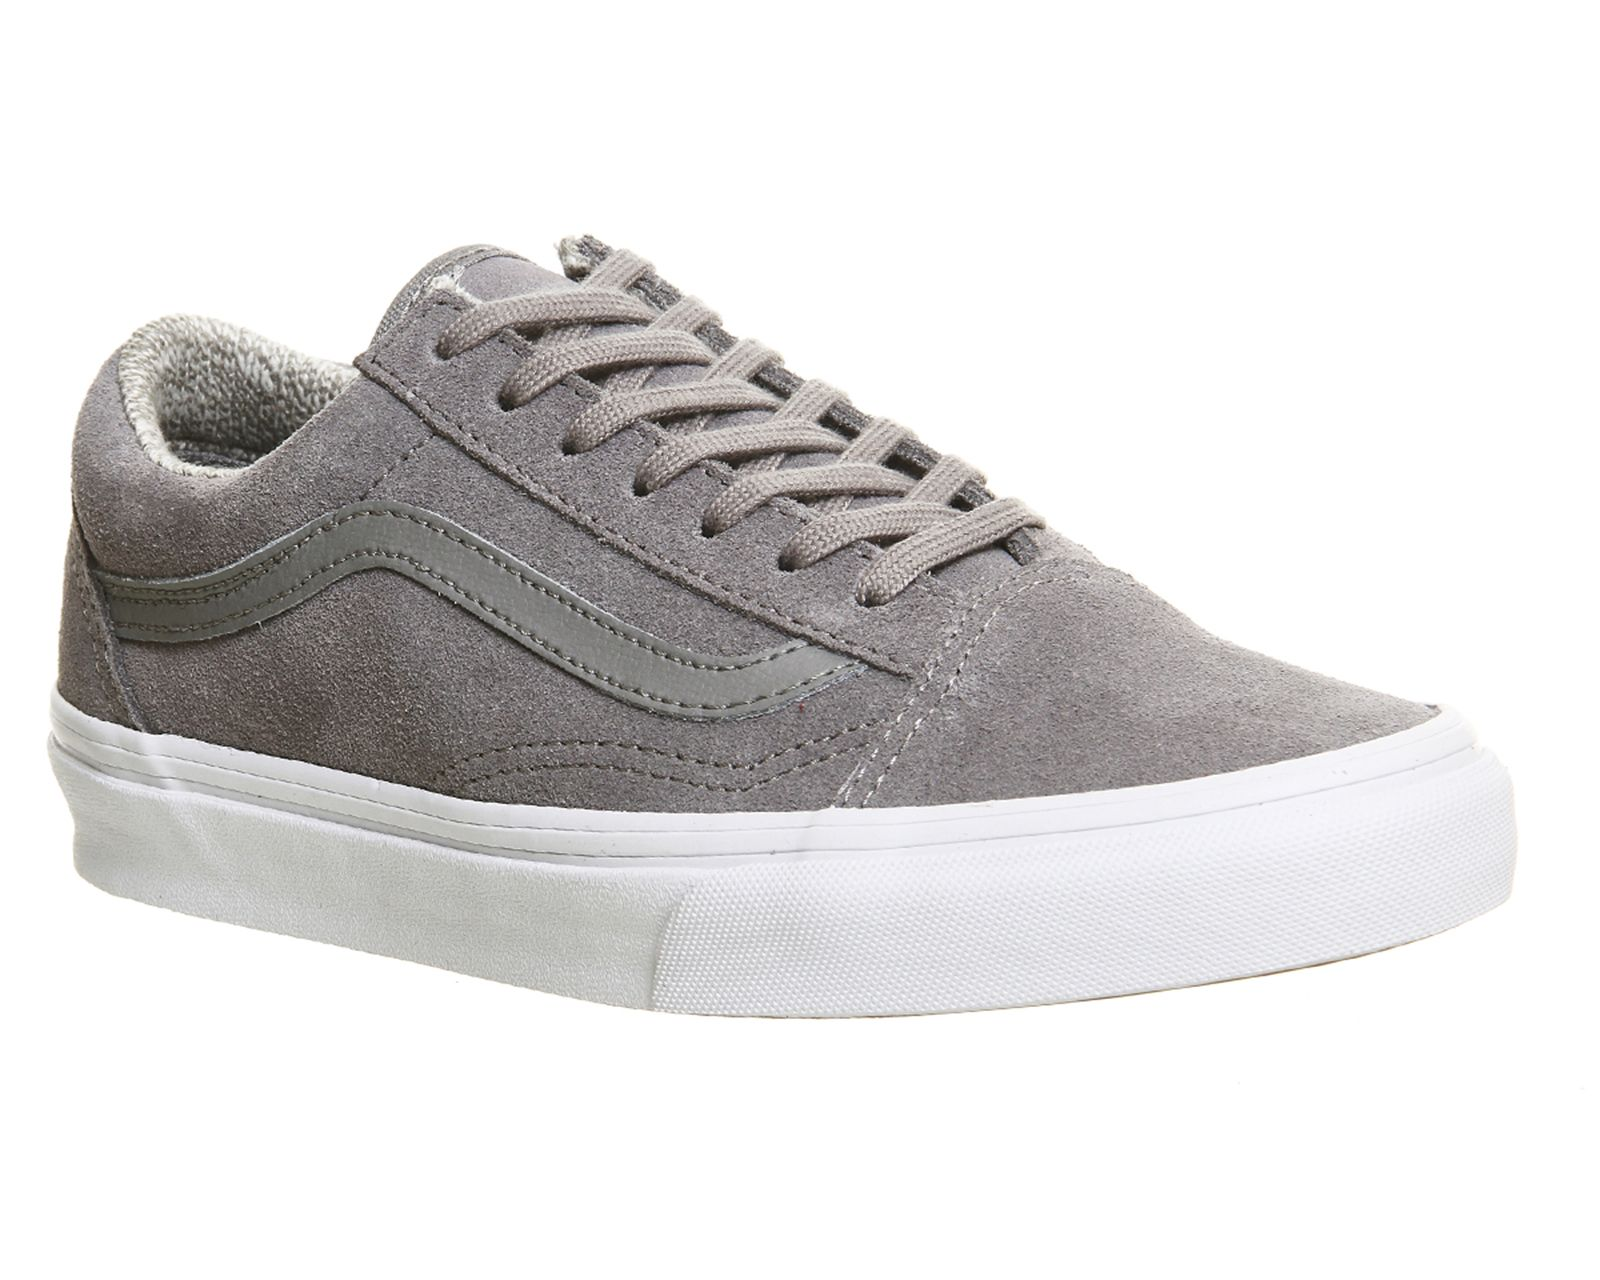 7f036581867c31 Buy Suede Woven Grey Vans Old Skool from OFFICE.co.uk ...